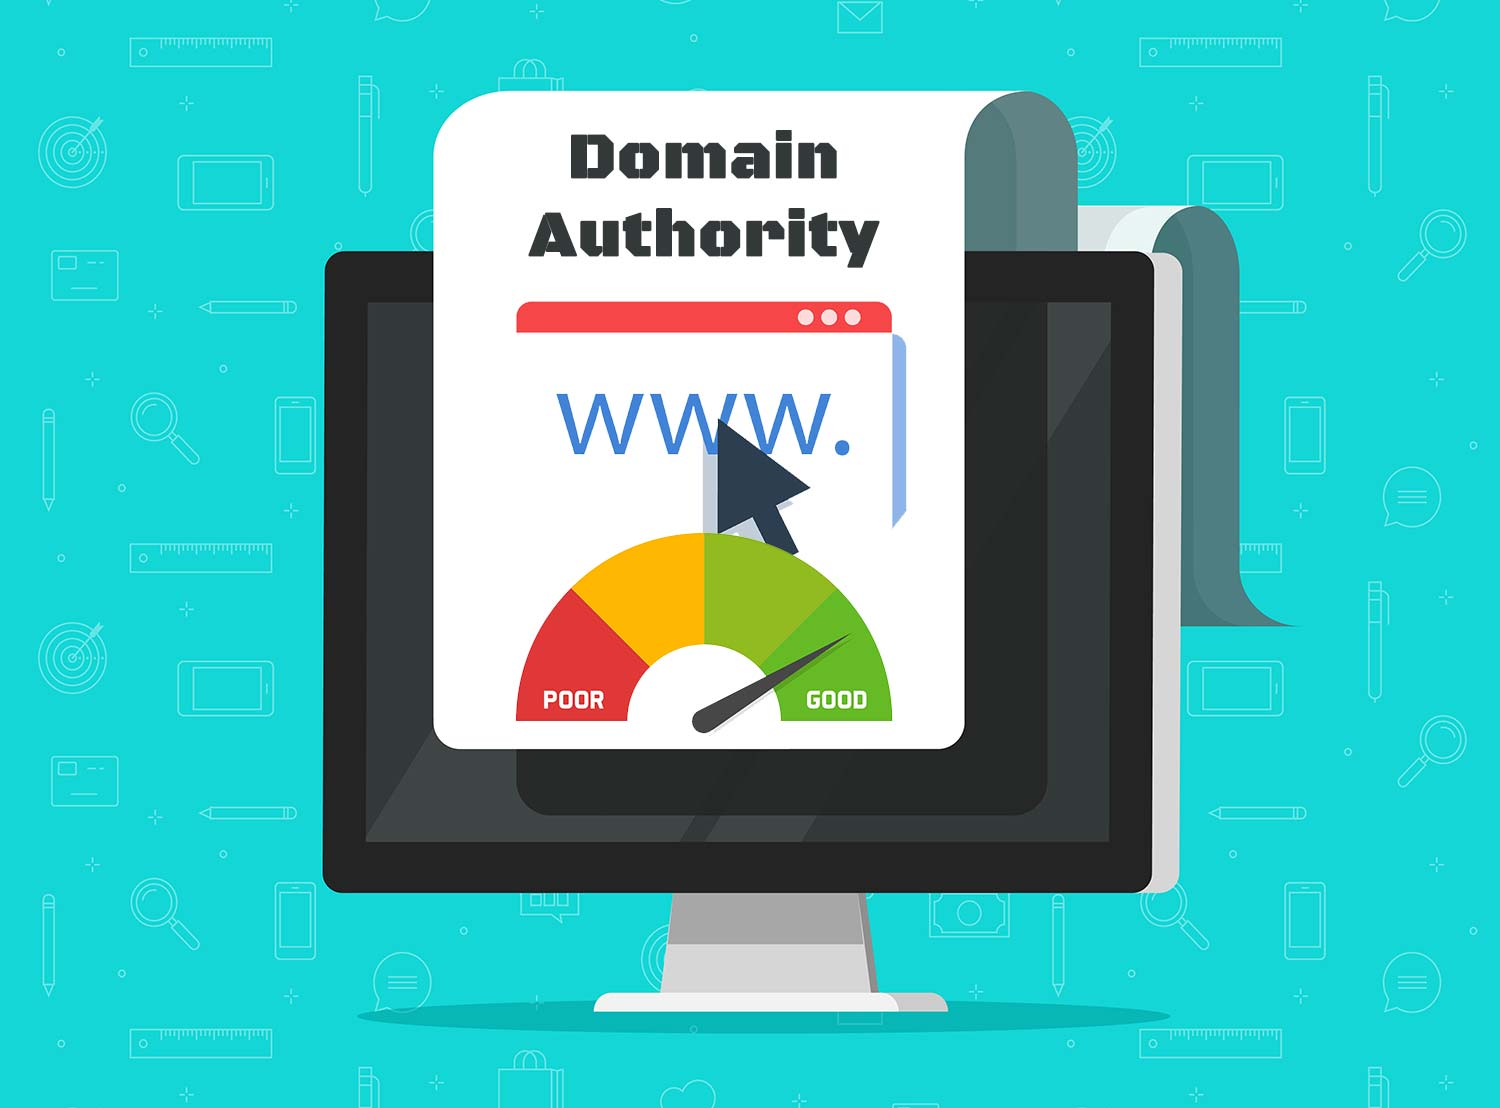 How is domain authority calculated?